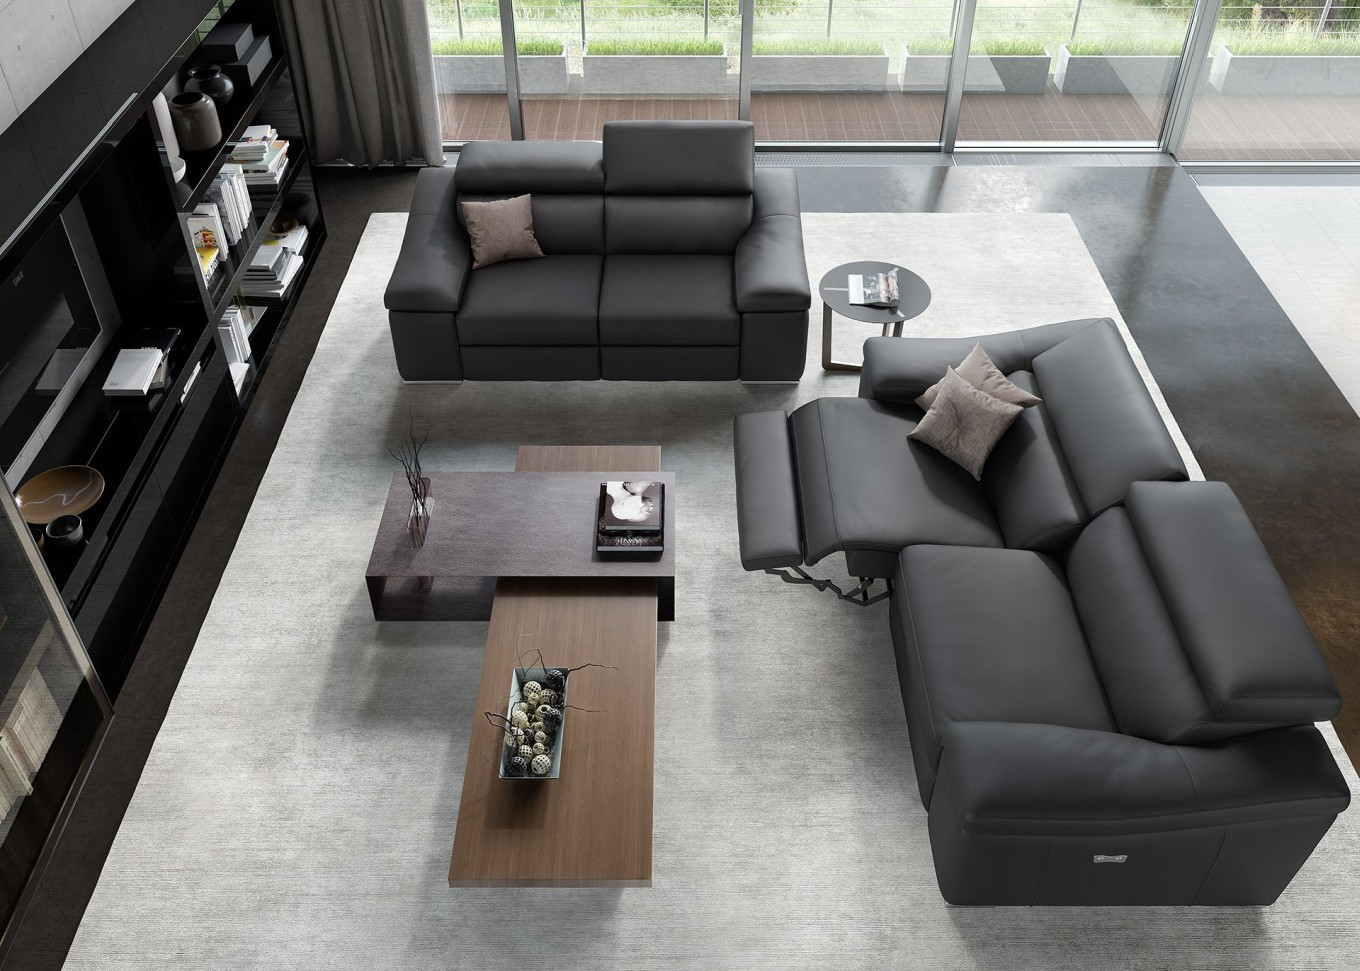 relax sofa ledersofa ledercouch funktionssofa funktionscouch sofa couch 2sitzer ebay. Black Bedroom Furniture Sets. Home Design Ideas